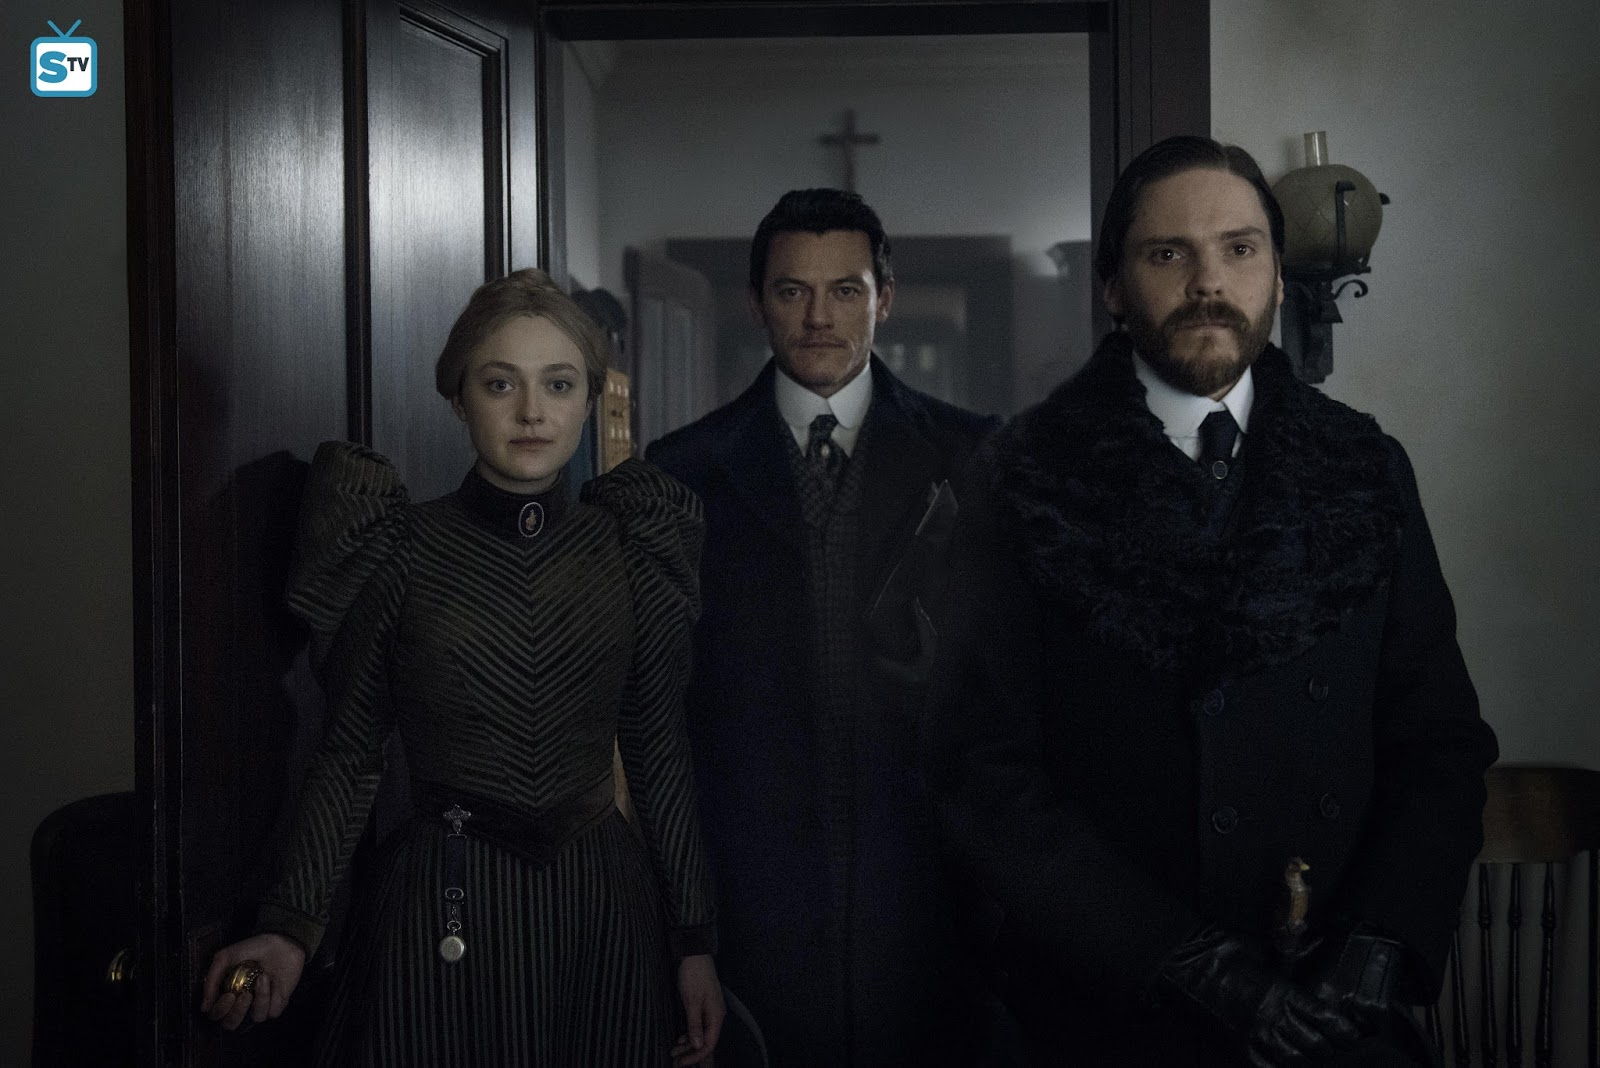 The Alienist - The Boy on the Bridge - Advance Review: Welcome to the dark and creepy 19th Century